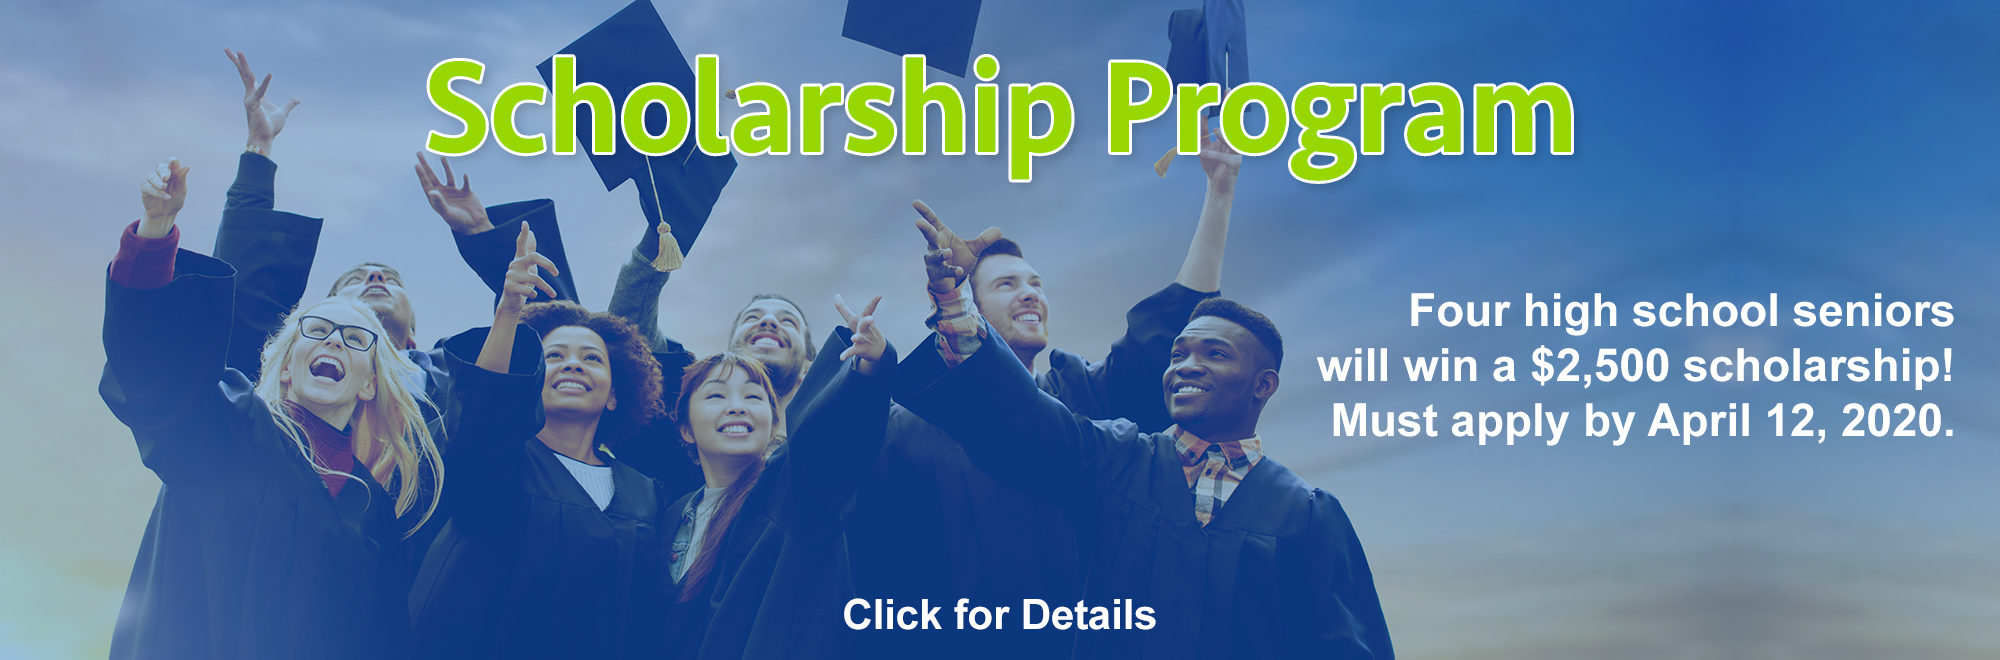 Image of high school graduates holding up their caps. Text telling about the scholarship program SACFCU has going on now. Click the banner for details